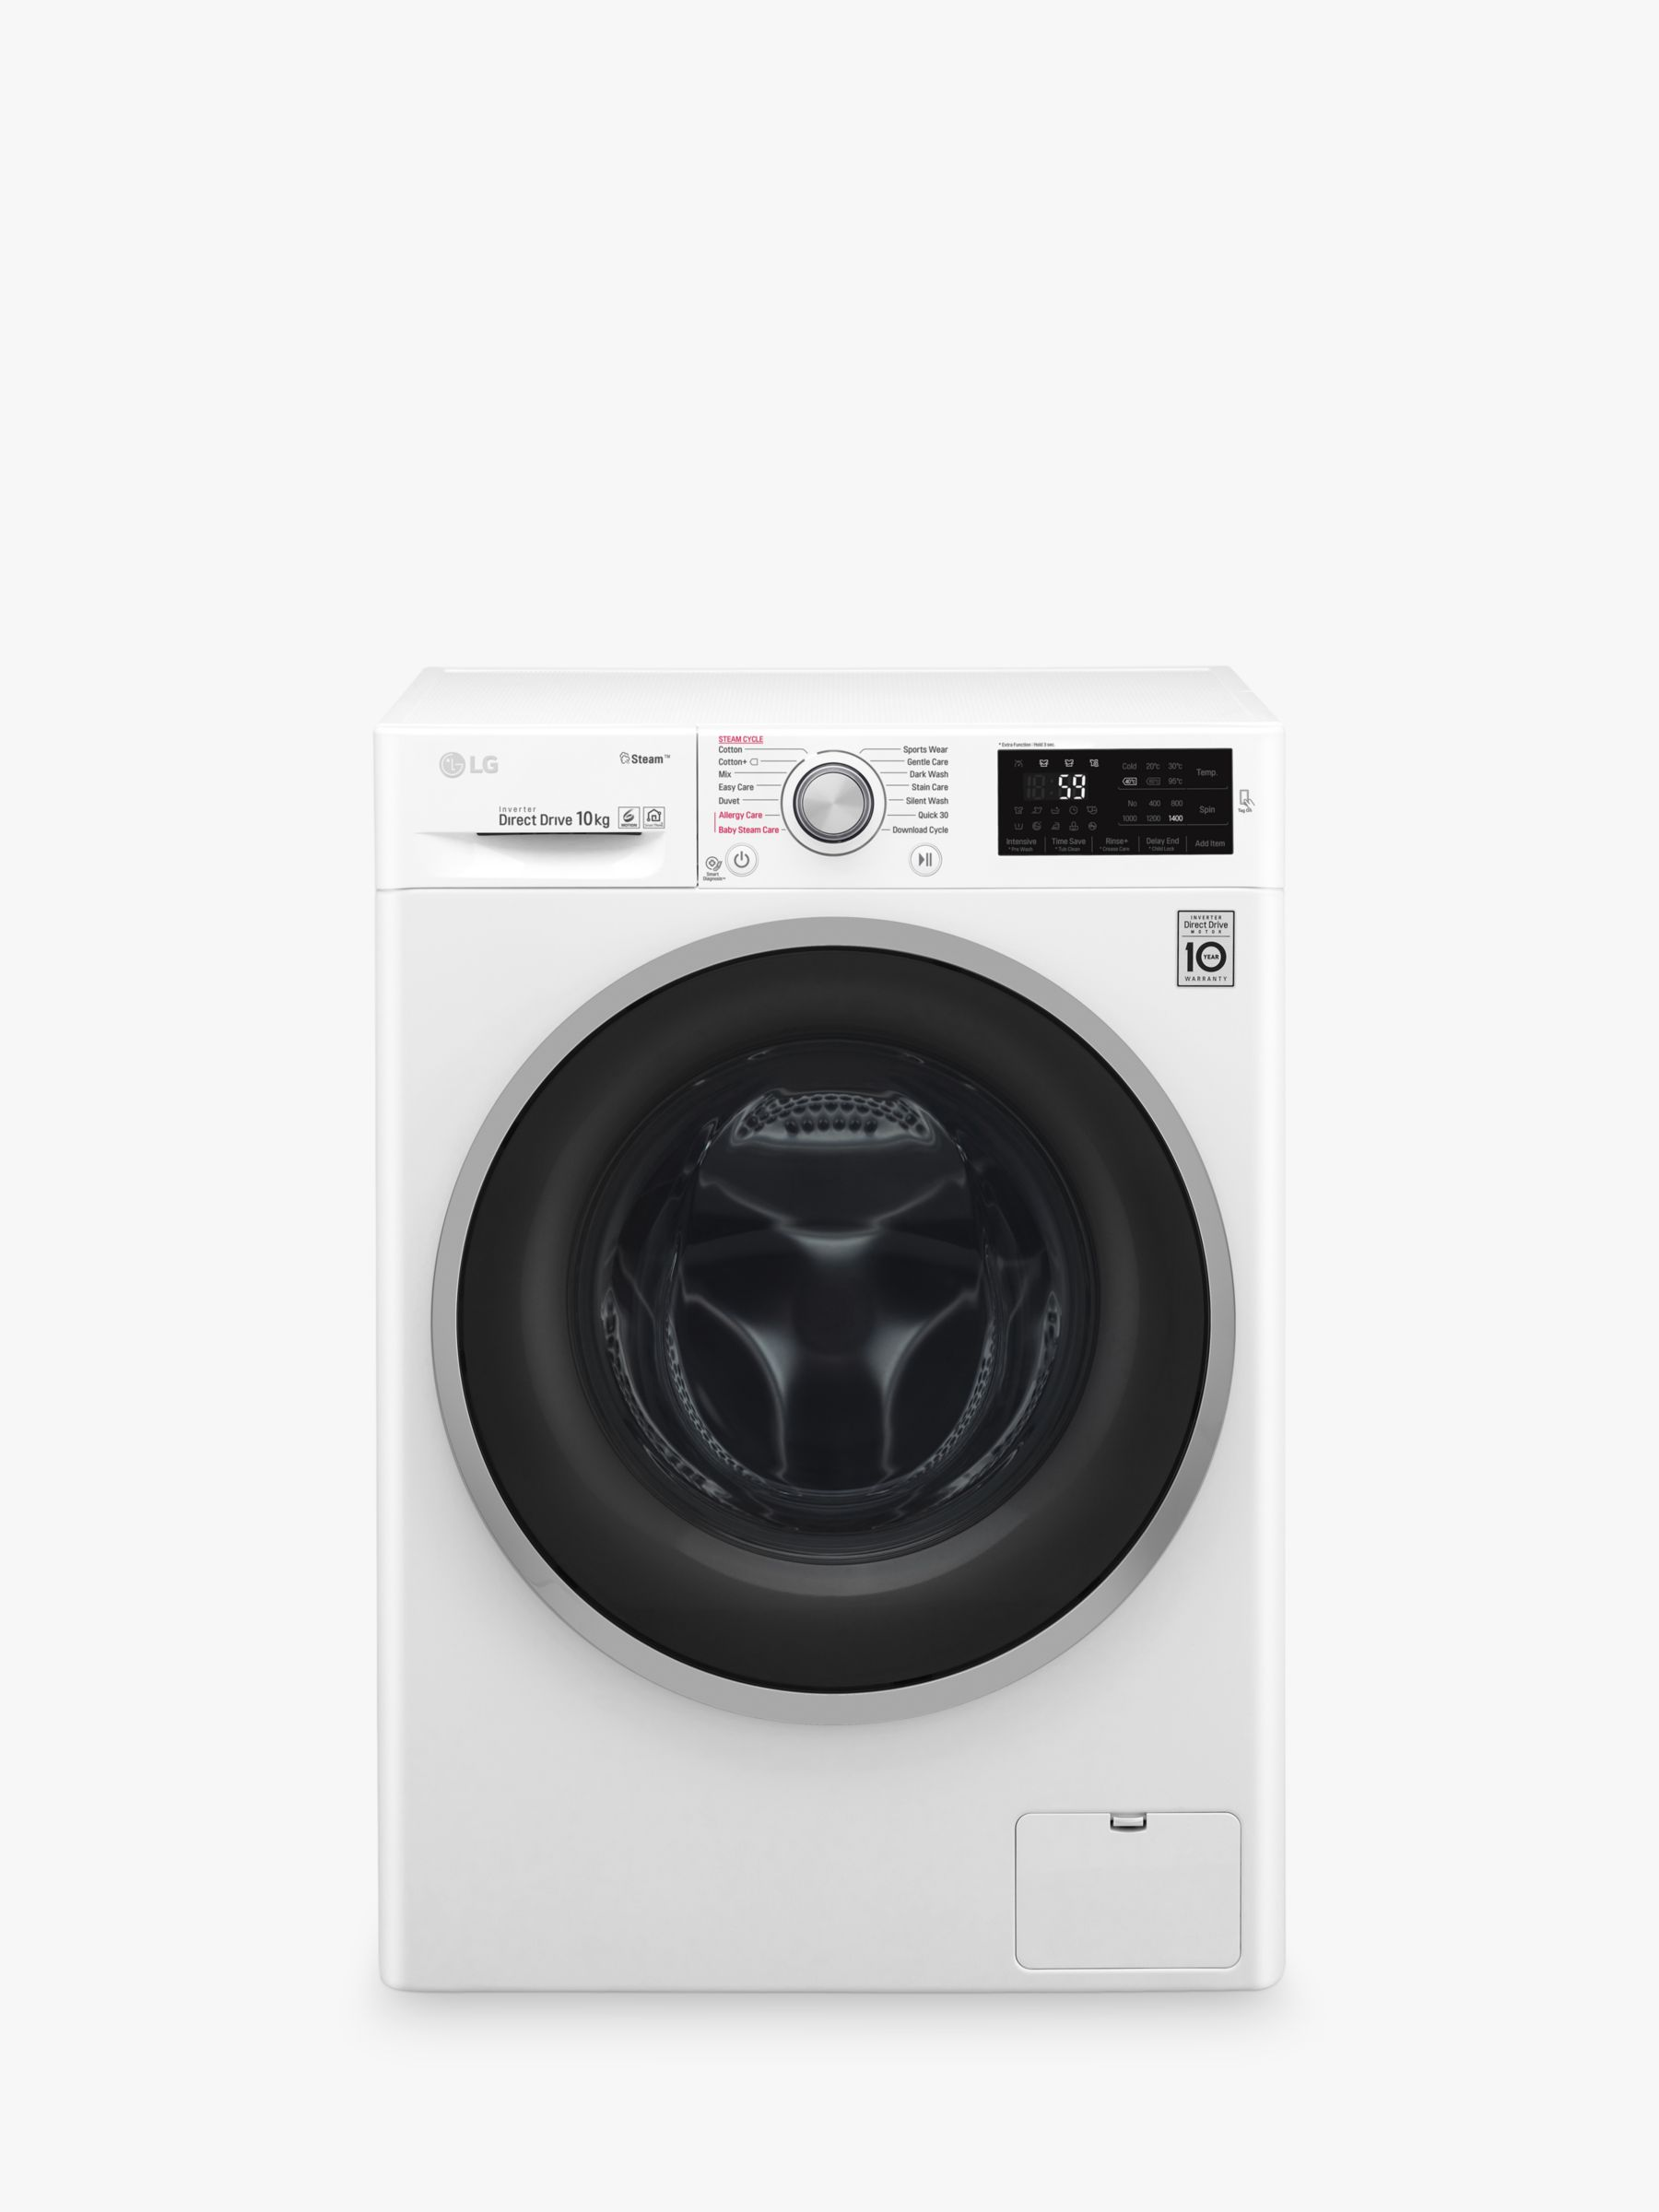 LG LG F4J610WS Freestanding Washing Machine, 10kg Load, A+++ Energy Rating, 1400rpm Spin, White